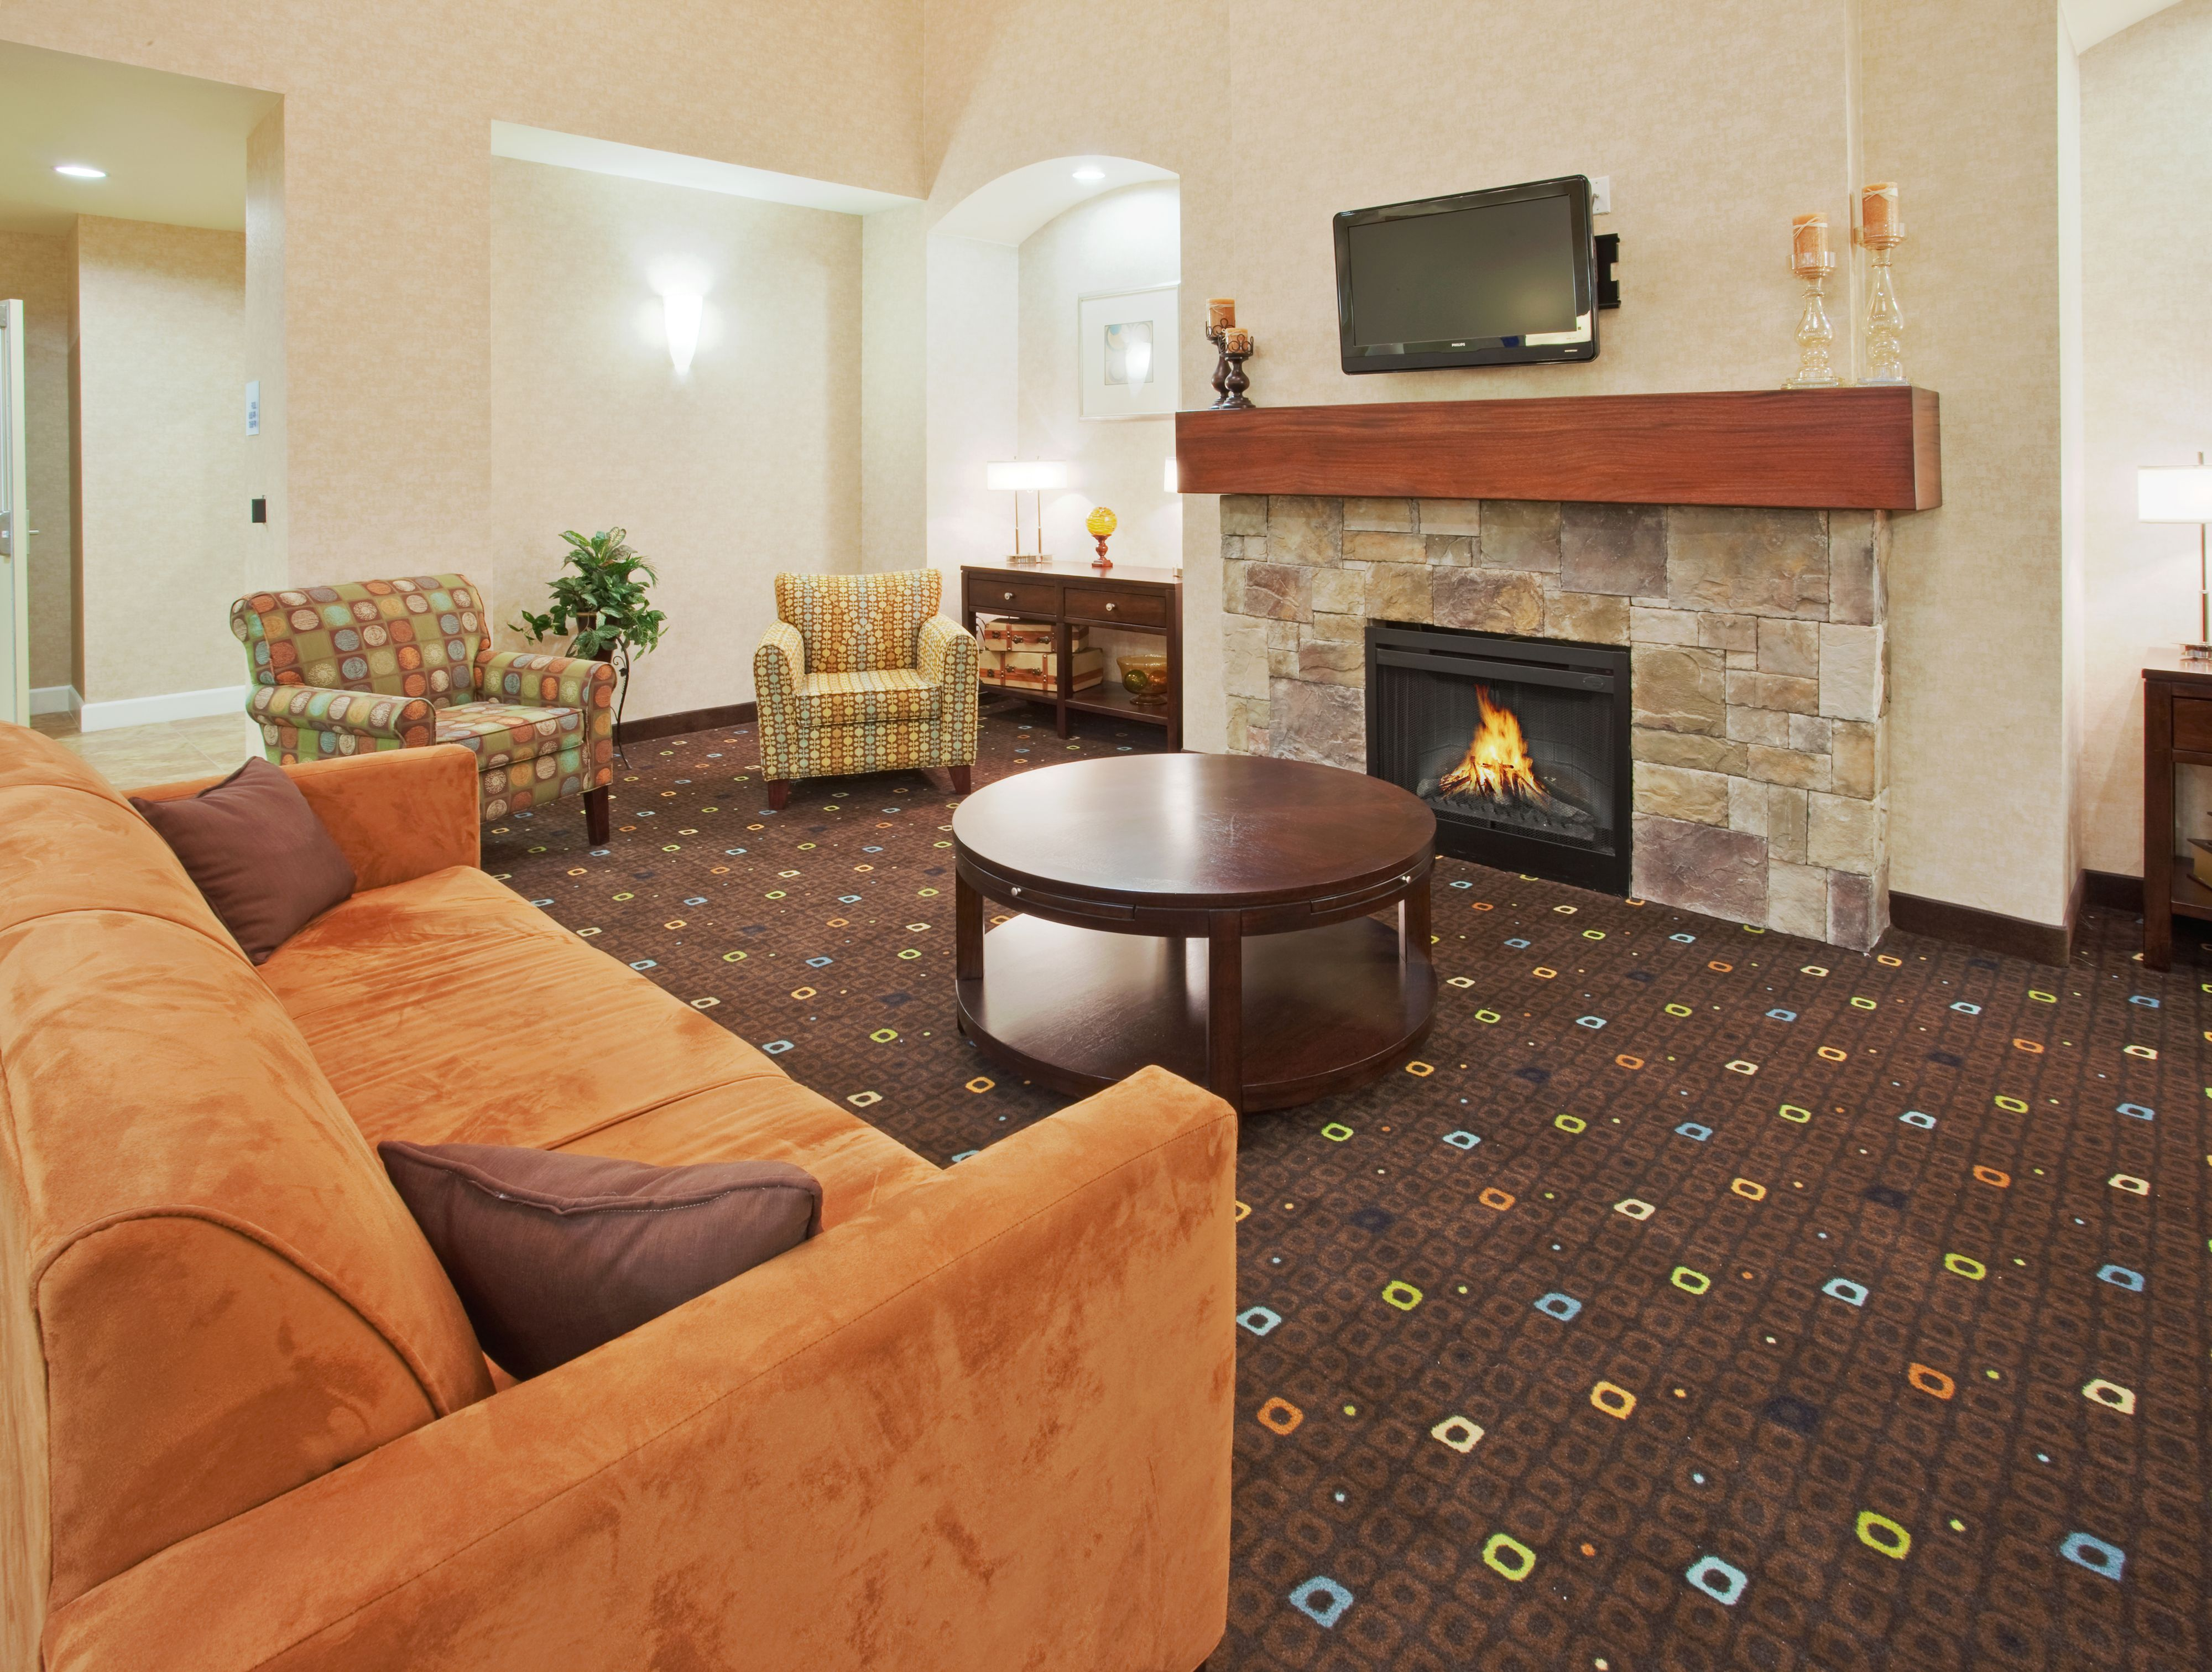 Holiday Inn Express Lodi image 4